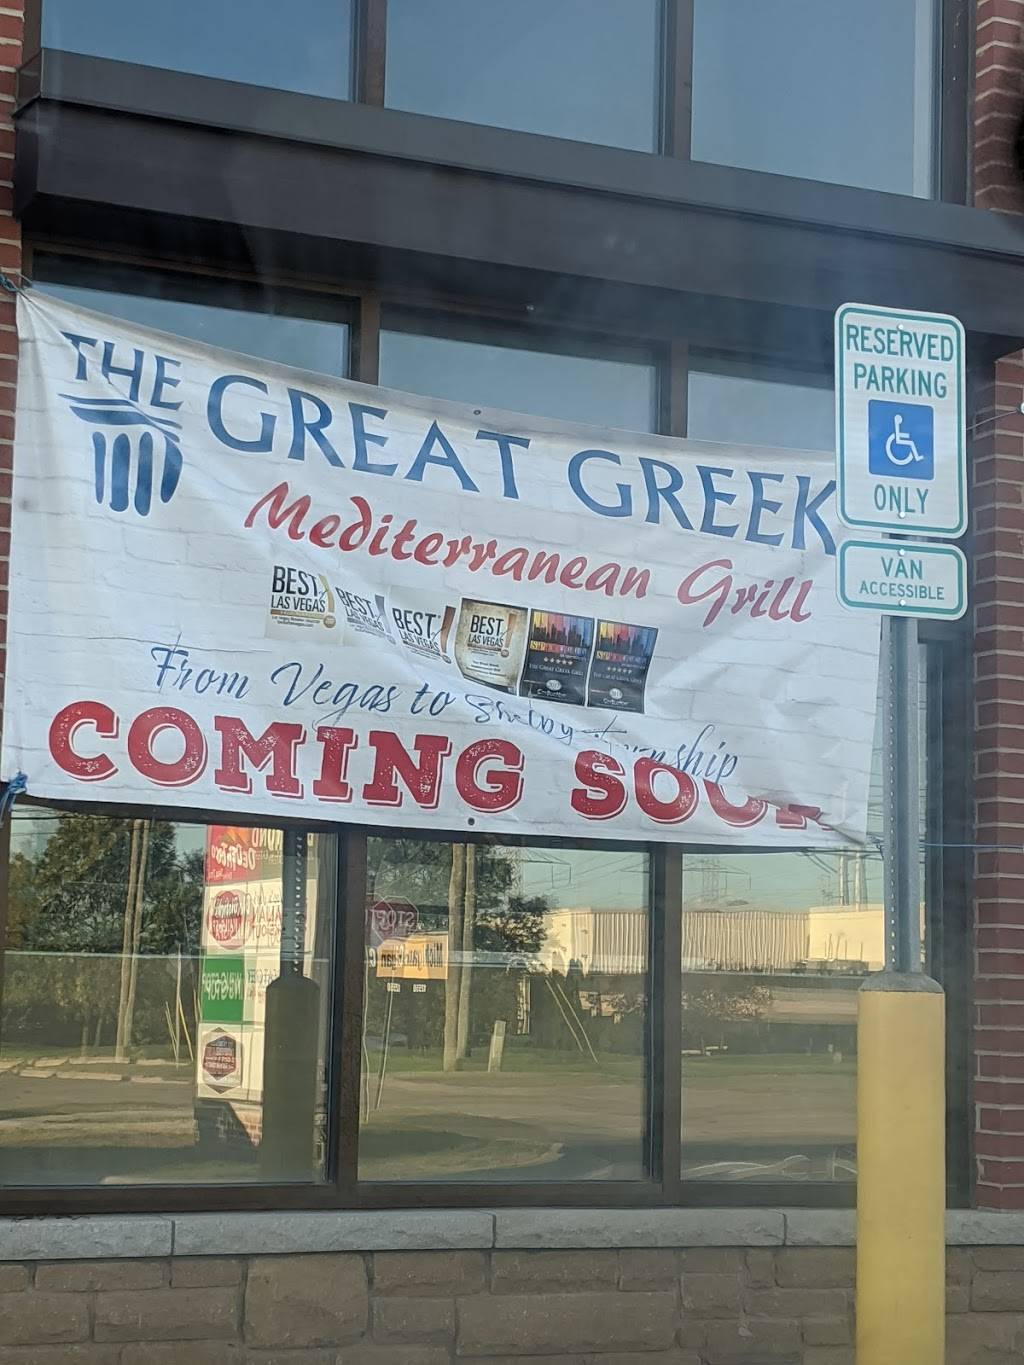 The Great Greek Mediterranean grill | restaurant | 12433 23 Mile Rd, Shelby Charter Twp, MI 48315, USA